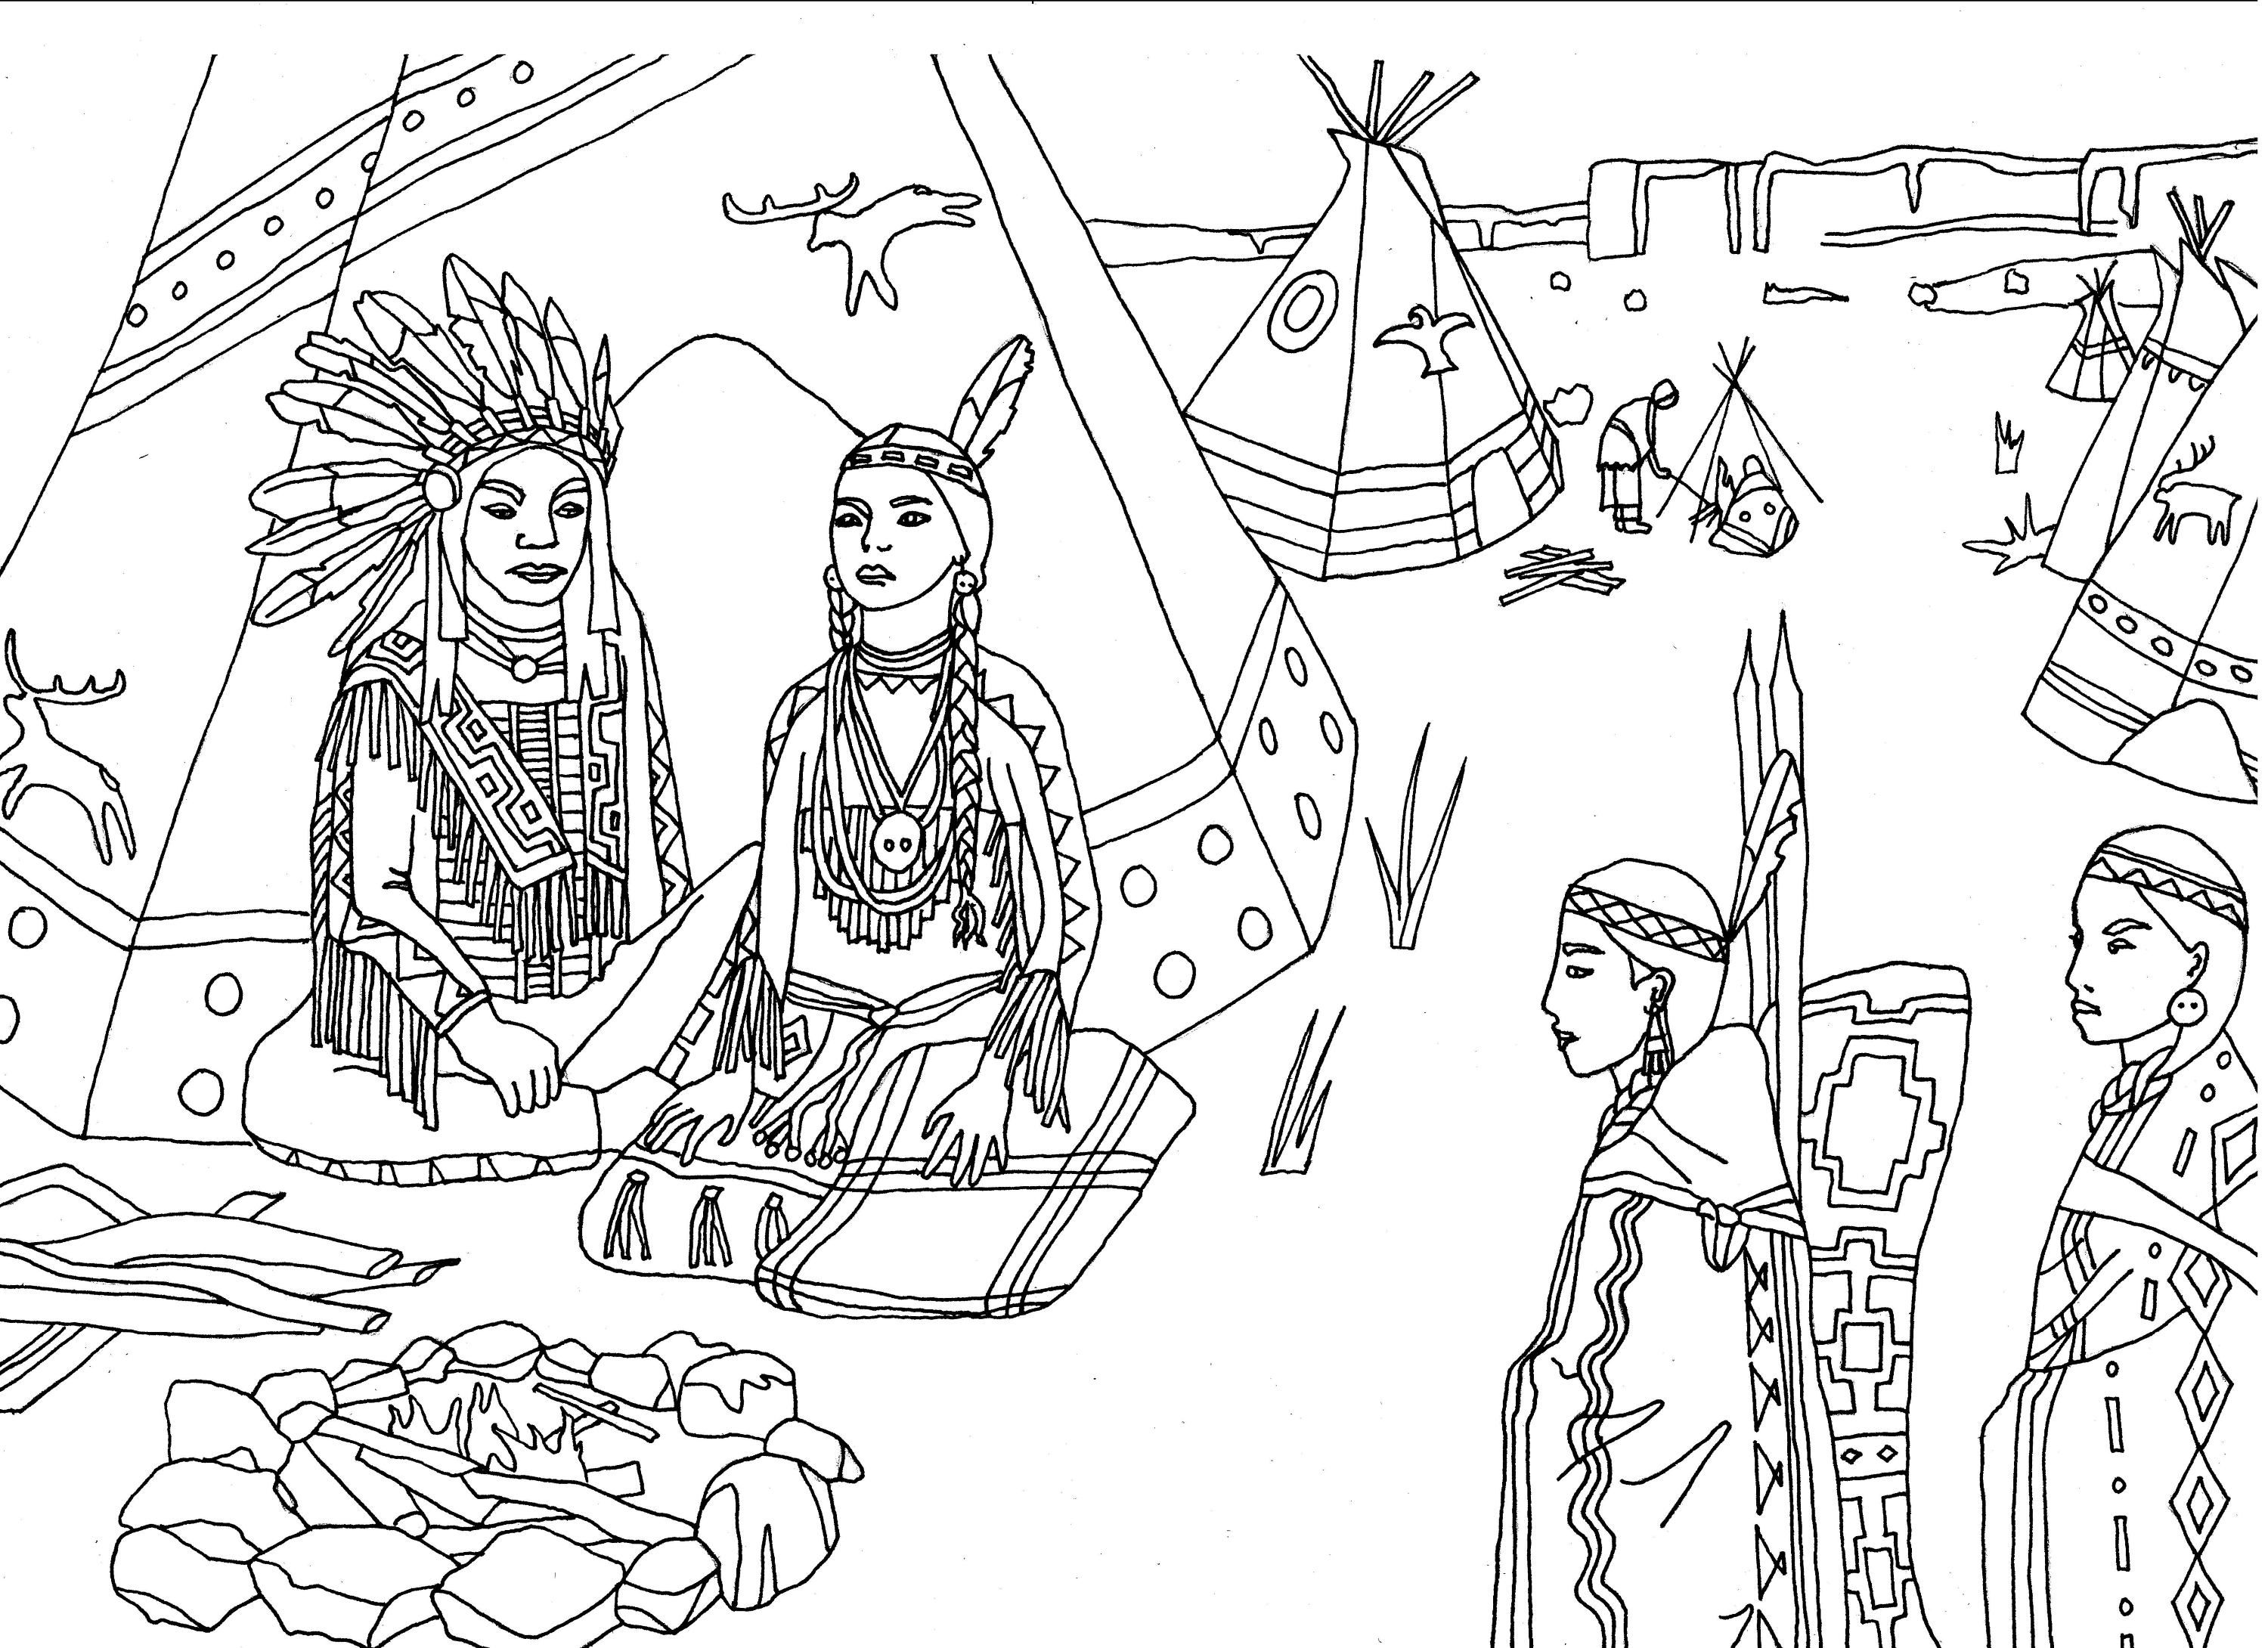 free coloring page coloring adult native americans indians sat front - Native American Coloring Book